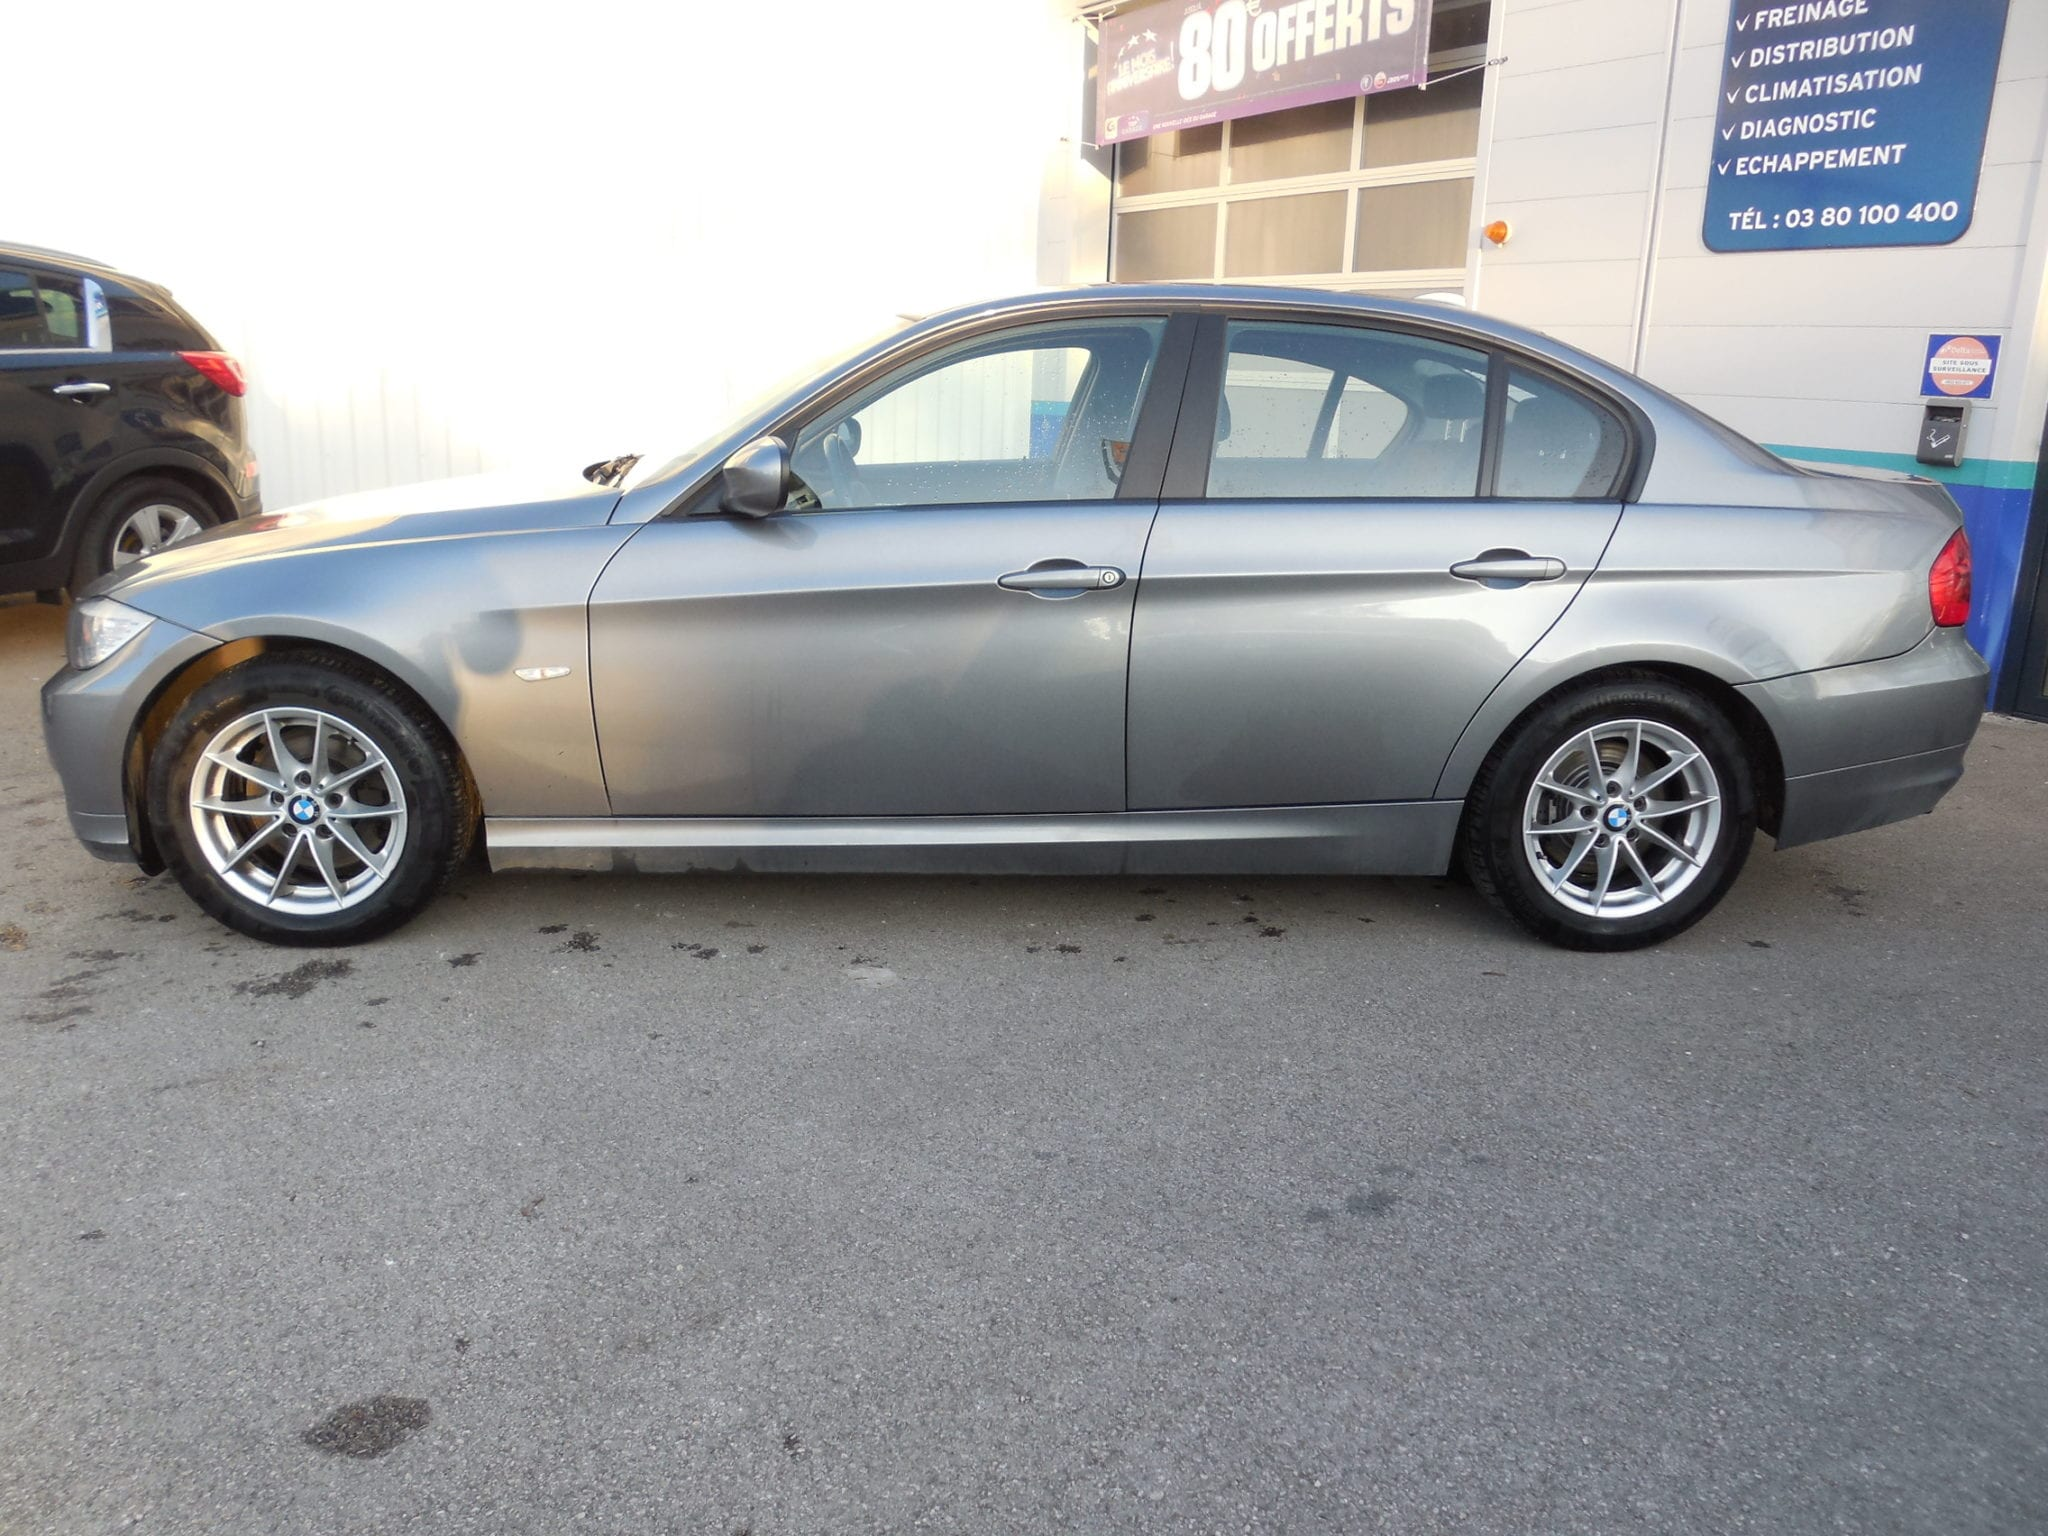 Bmw Bmw Serie 3 Edition business 184cv  - Image 2